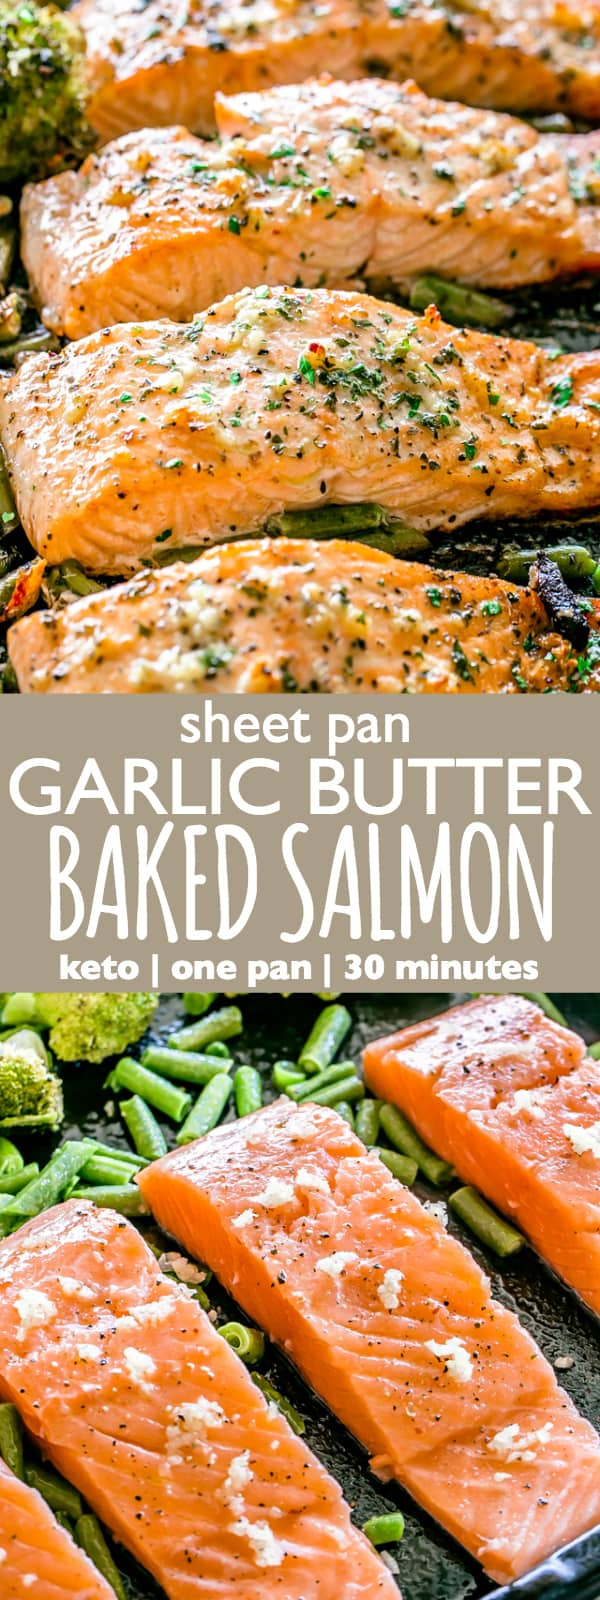 Garlic Butter Baked Salmon - Tender and juicy salmon brushed with an incredible garlic butter sauce and baked on a sheet pan with your favorite veggies. This delicious baked salmon takes just a few minutes of prep and makes for a perfect weeknight meal in just 30 minutes. #salmon #bakedsalmon #garlic #butter #keto #ketorecipes #broccoli #sheetpandinners #onepot #30minutemeal #easydinner #easyrecipe #seafood #salmon